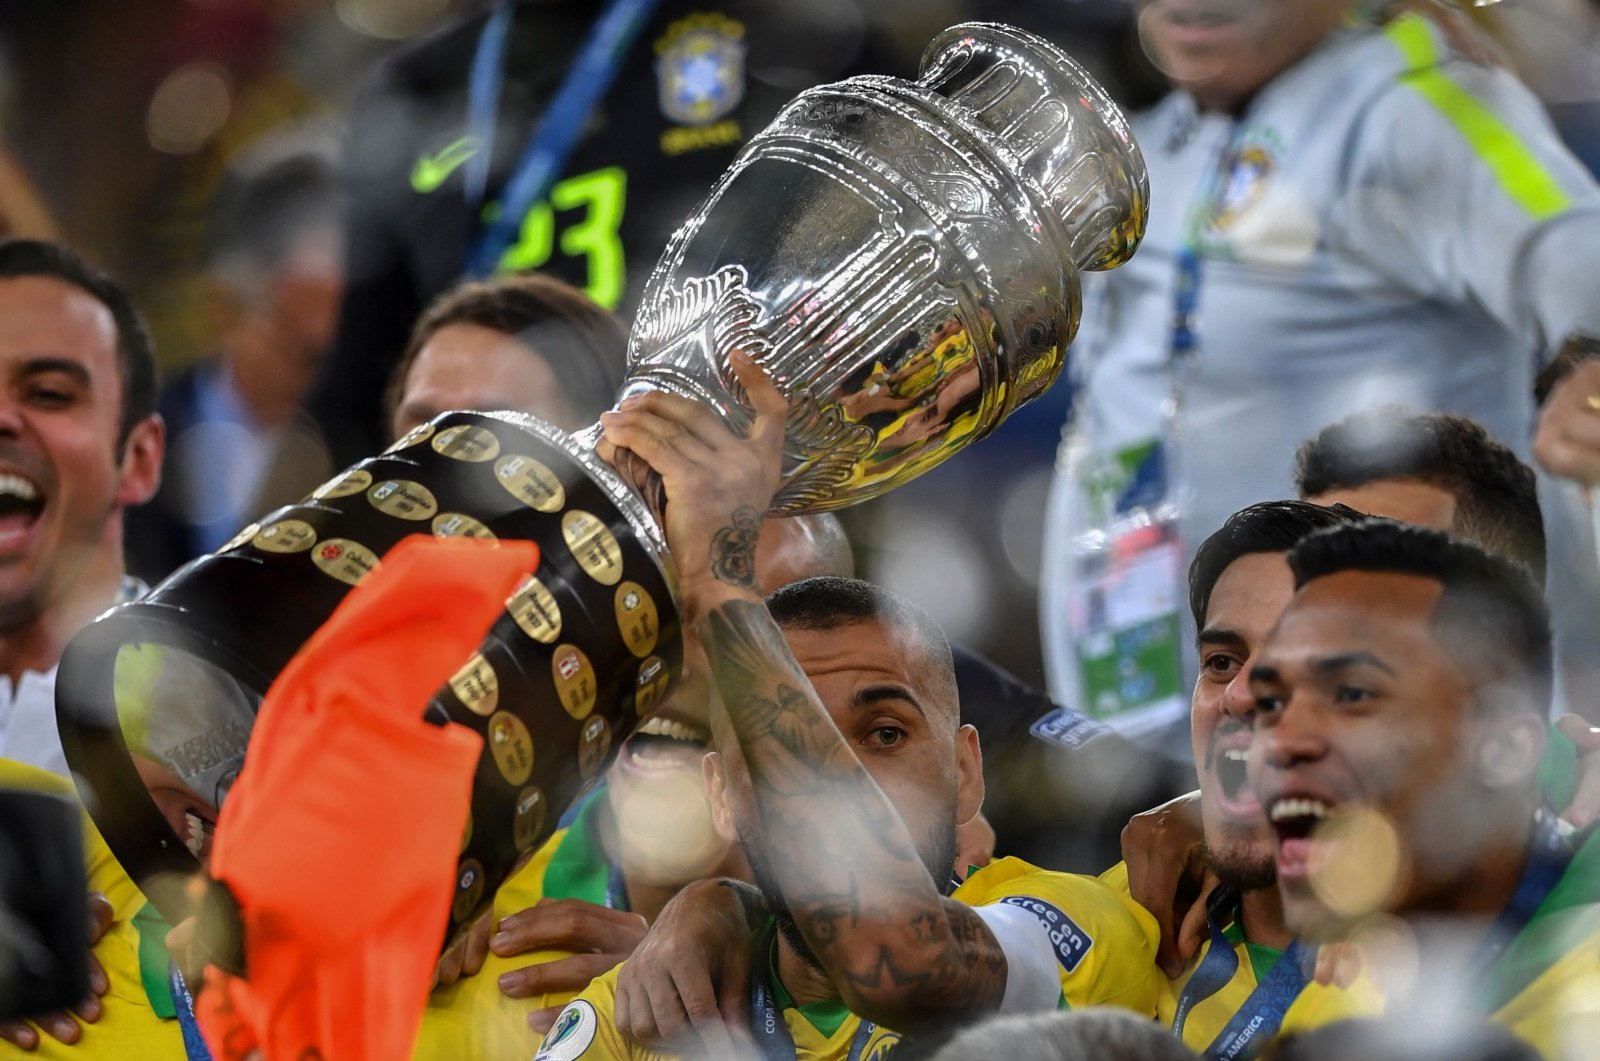 Brazil's Dani Alves holds up the Copa America trophy after defeating Peru in the final at Maracana Stadium in Rio de Janeiro, Brazil, July 07, 2019. (AFP Photo)